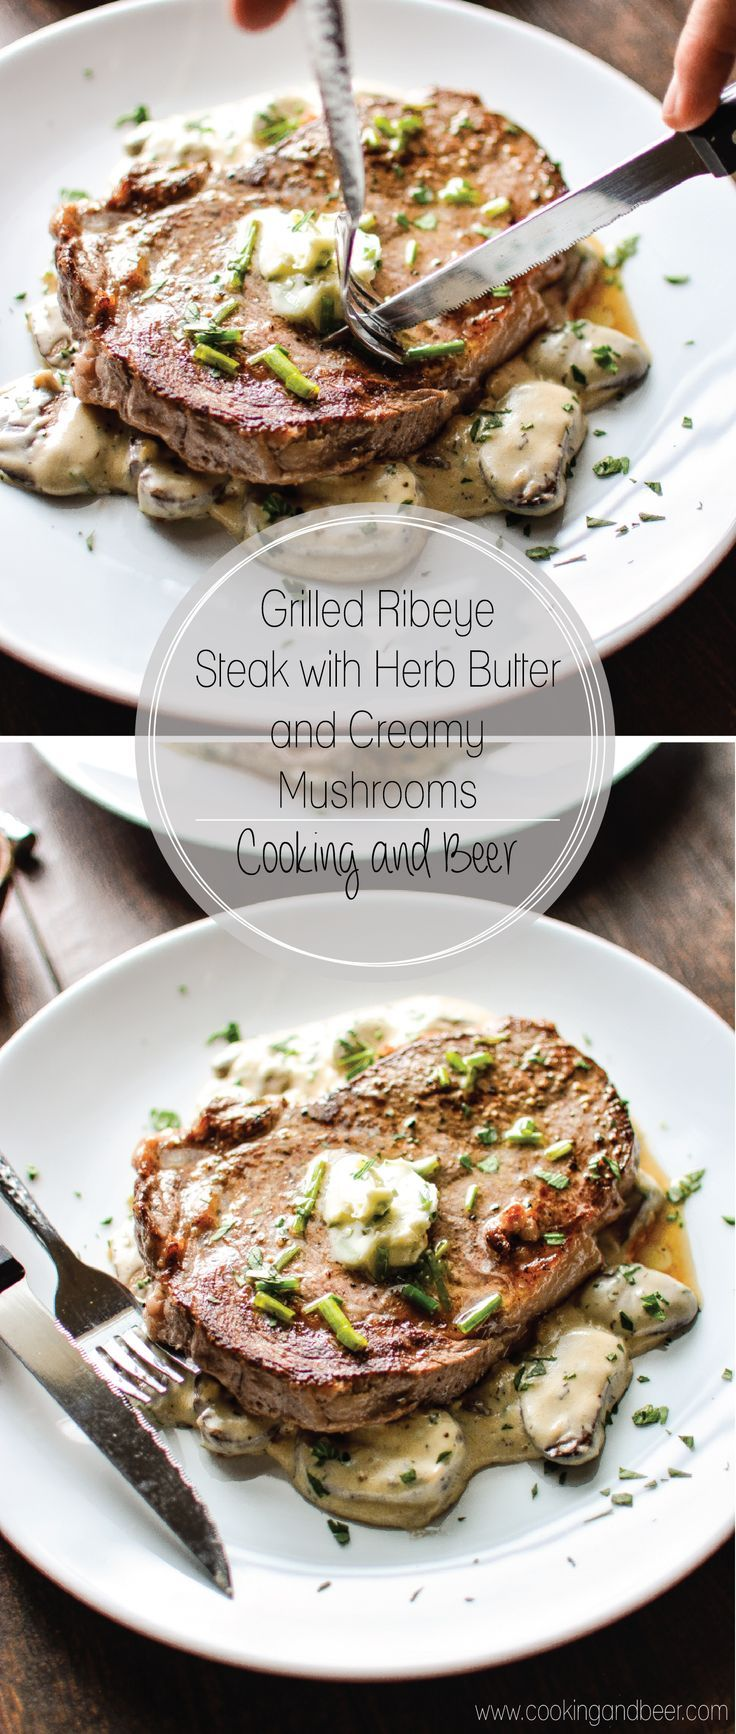 Grilled Ribeye Steak with Herb Butter and Creamy Mushrooms is a hearty, comforting and delicious weekend grilling recipe! | www.cookingandbee...